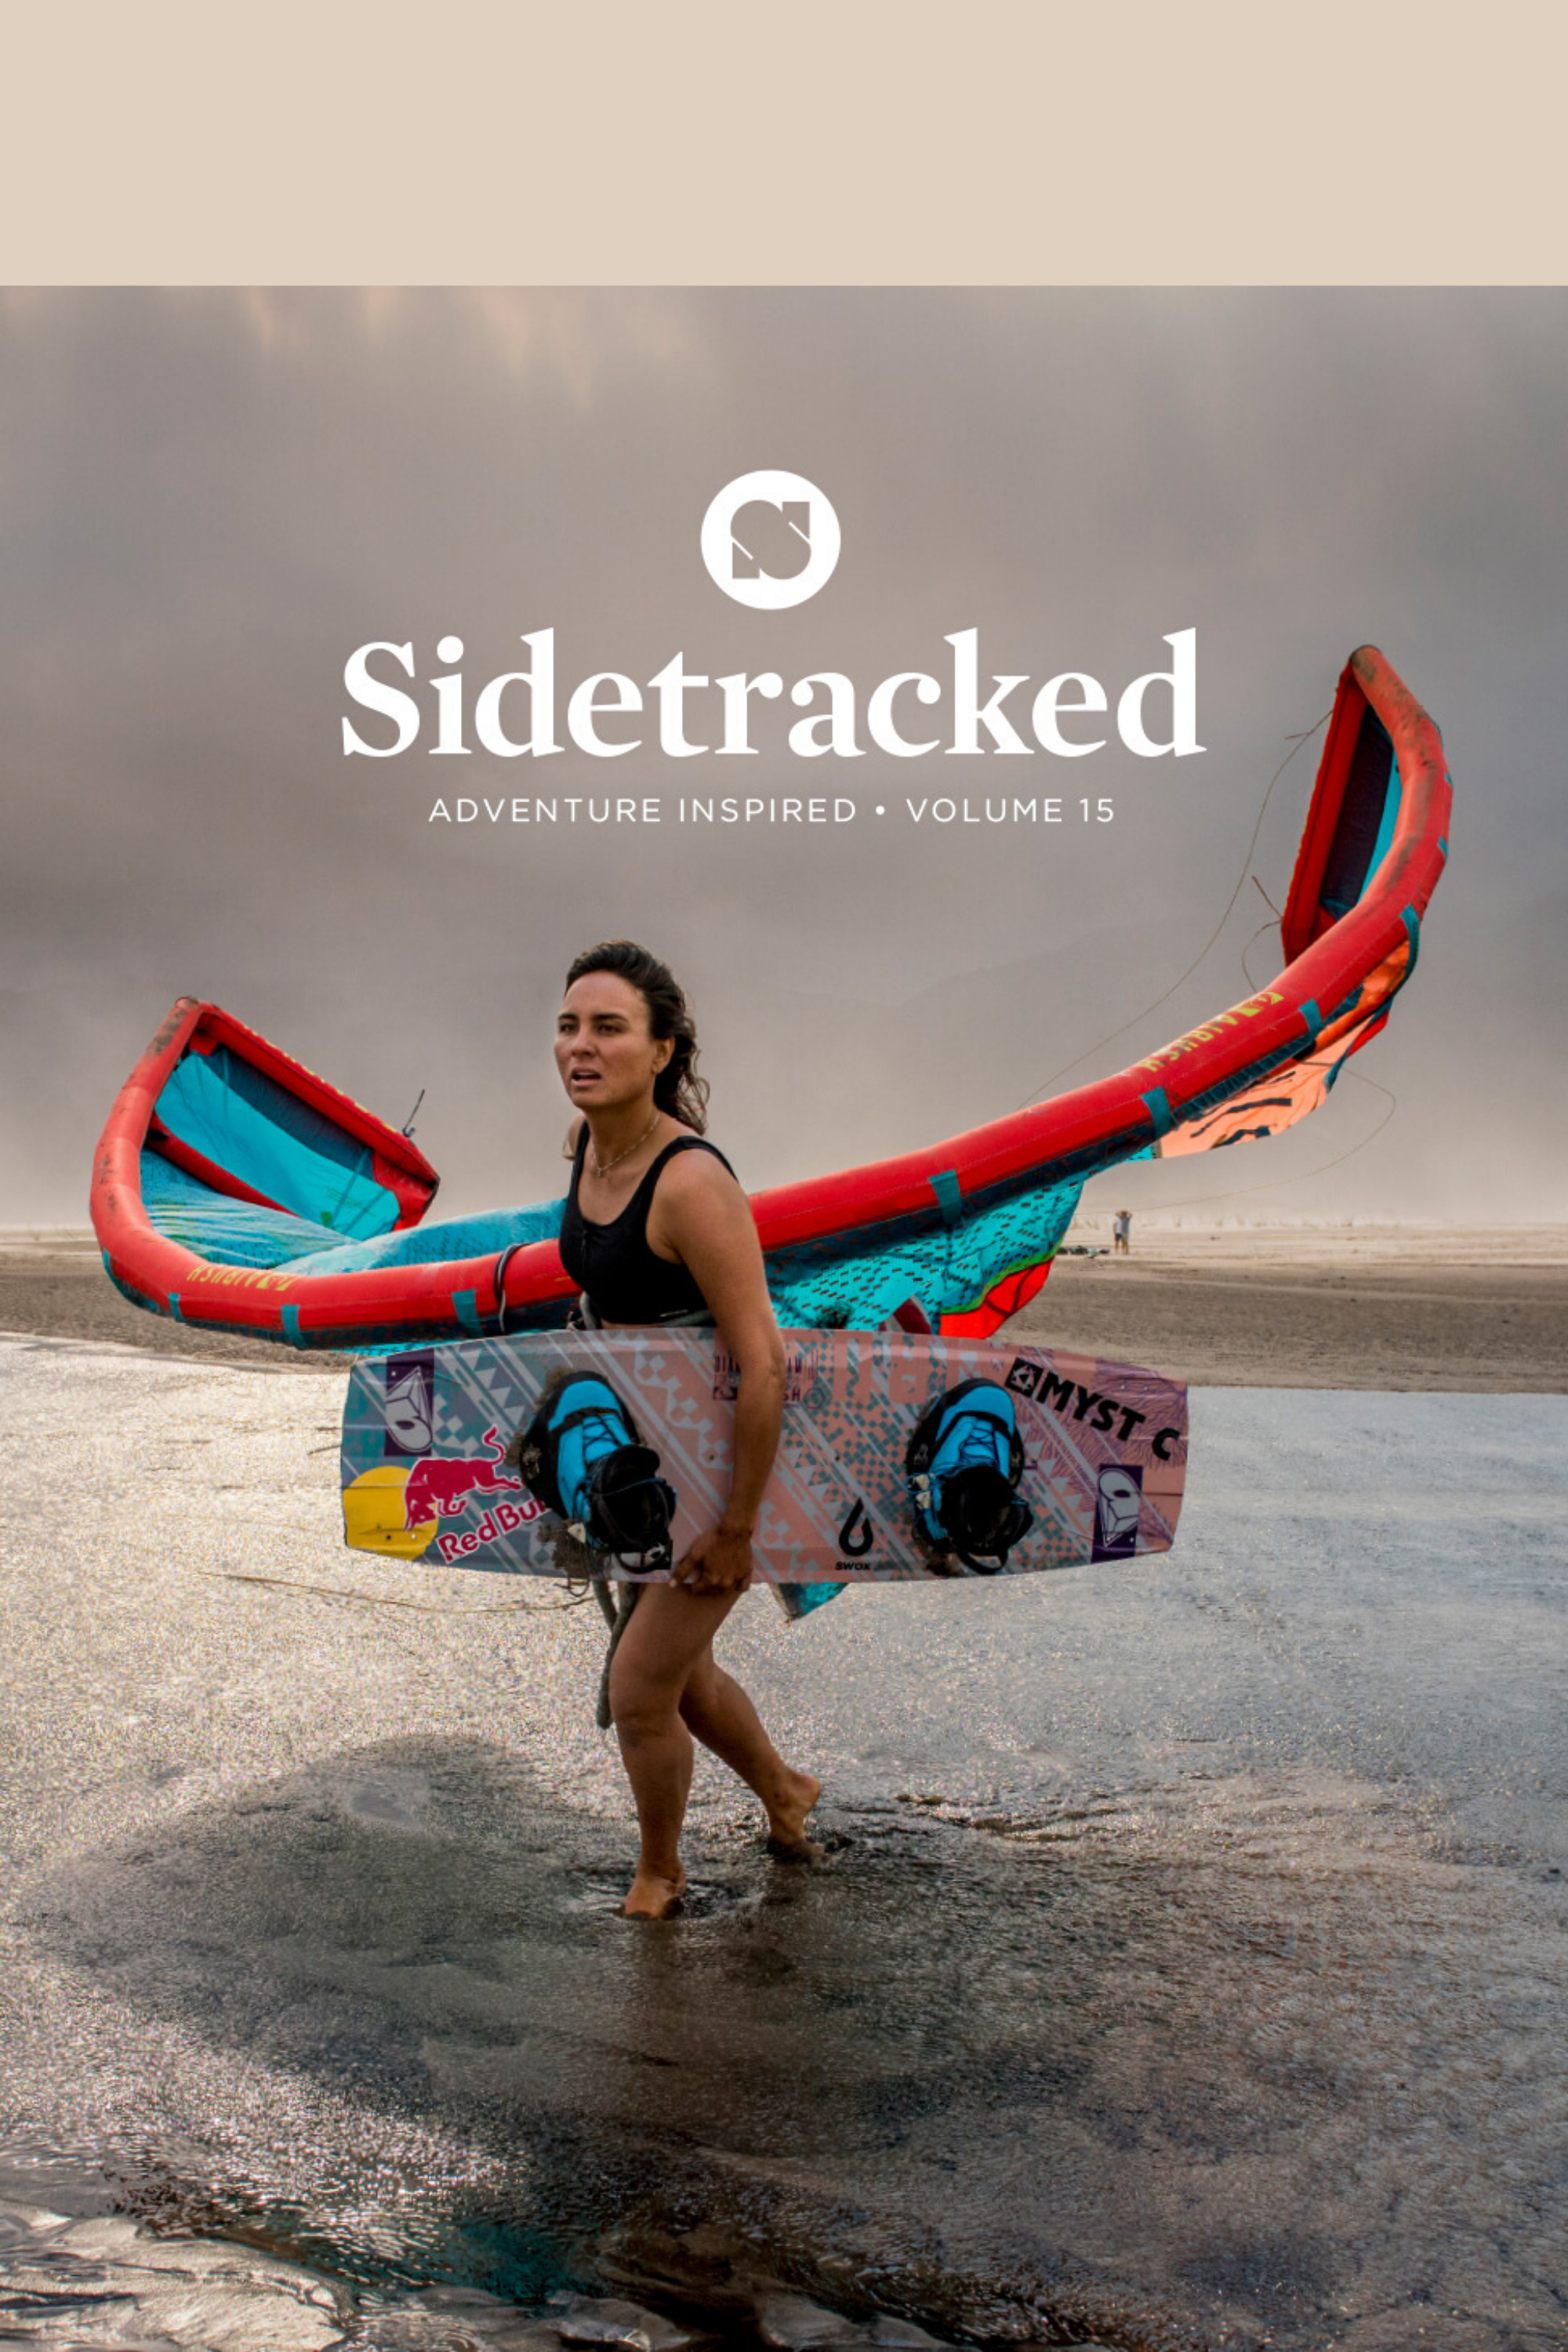 Sidetracked Volume 15